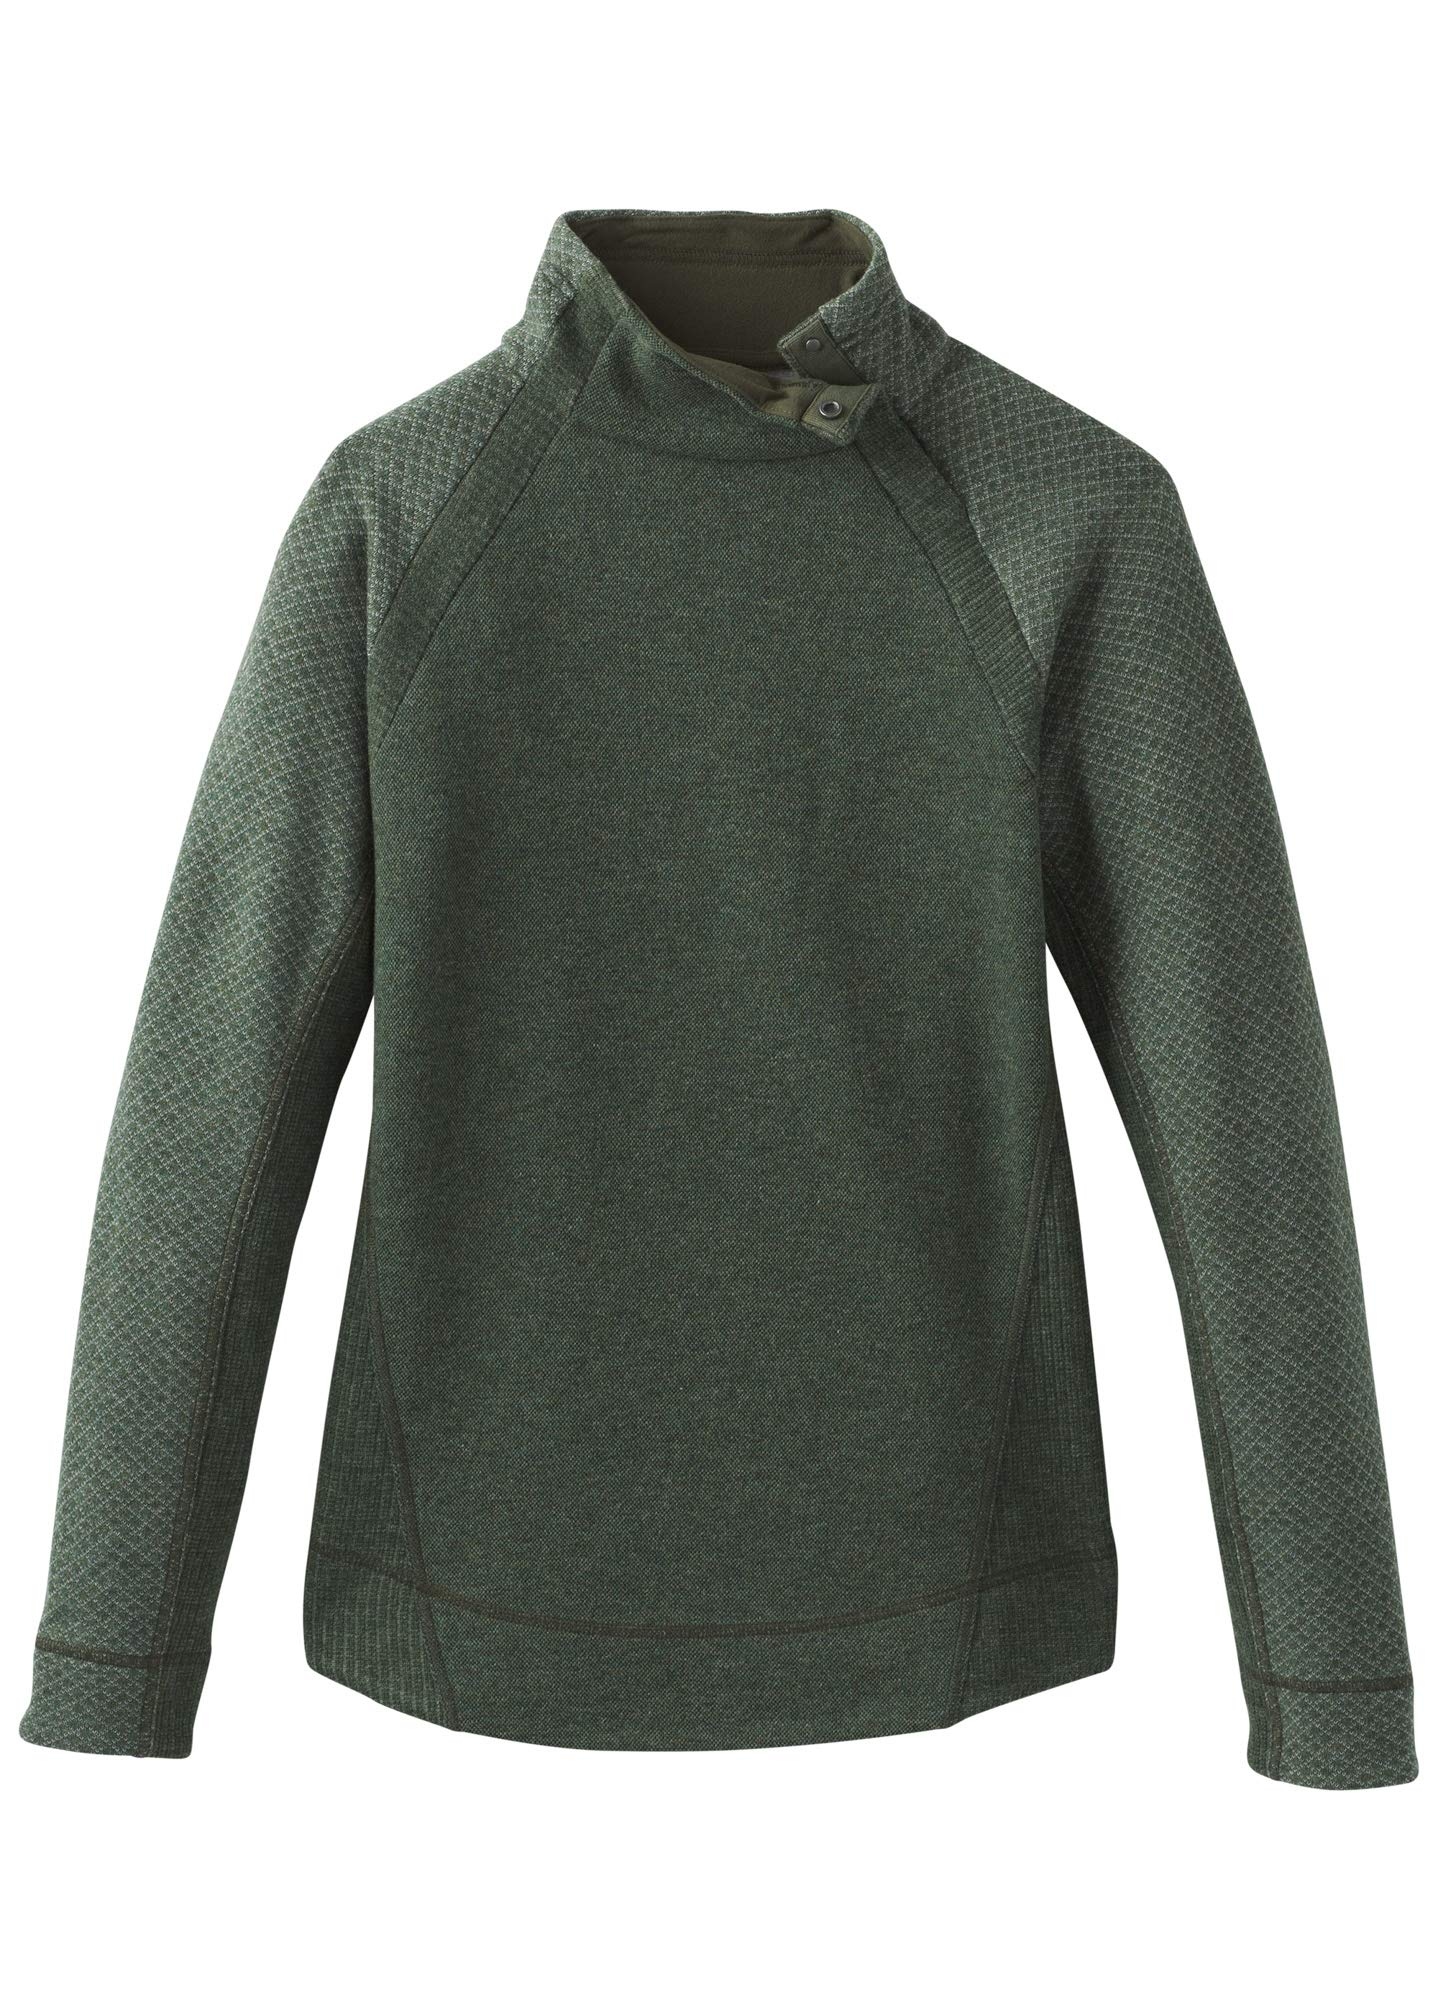 prAna Women's Brandie Sweater, Rye Green Heather, Small by prAna